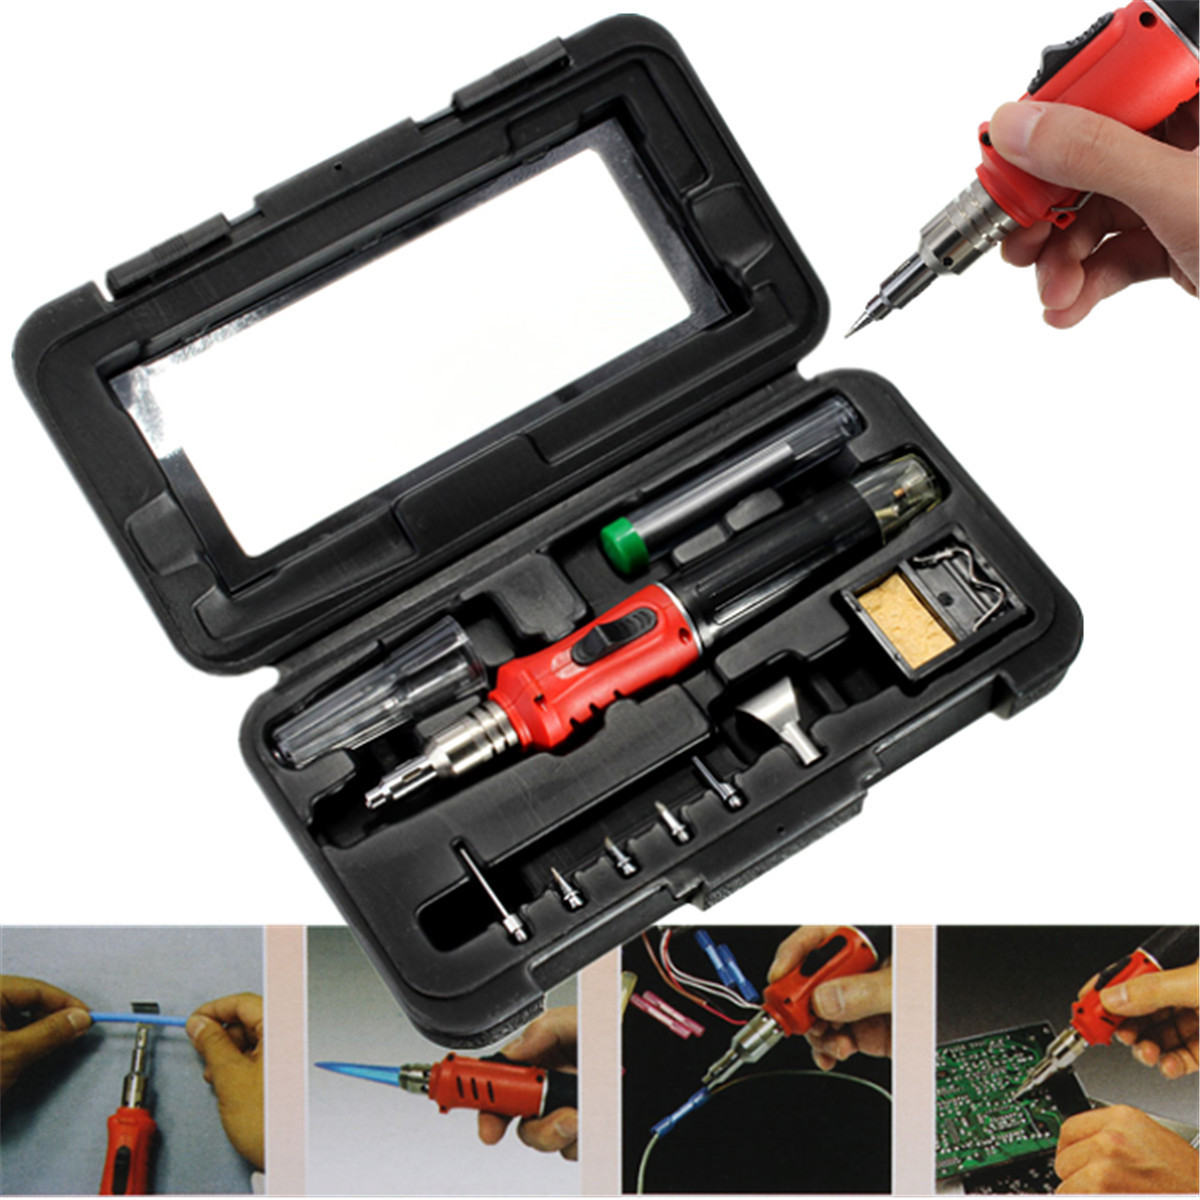 Raitool® HS-1115K 10 in 1 Welding Kit Blow Torch Professional Butane Gas Solder Iron Soldering Tools